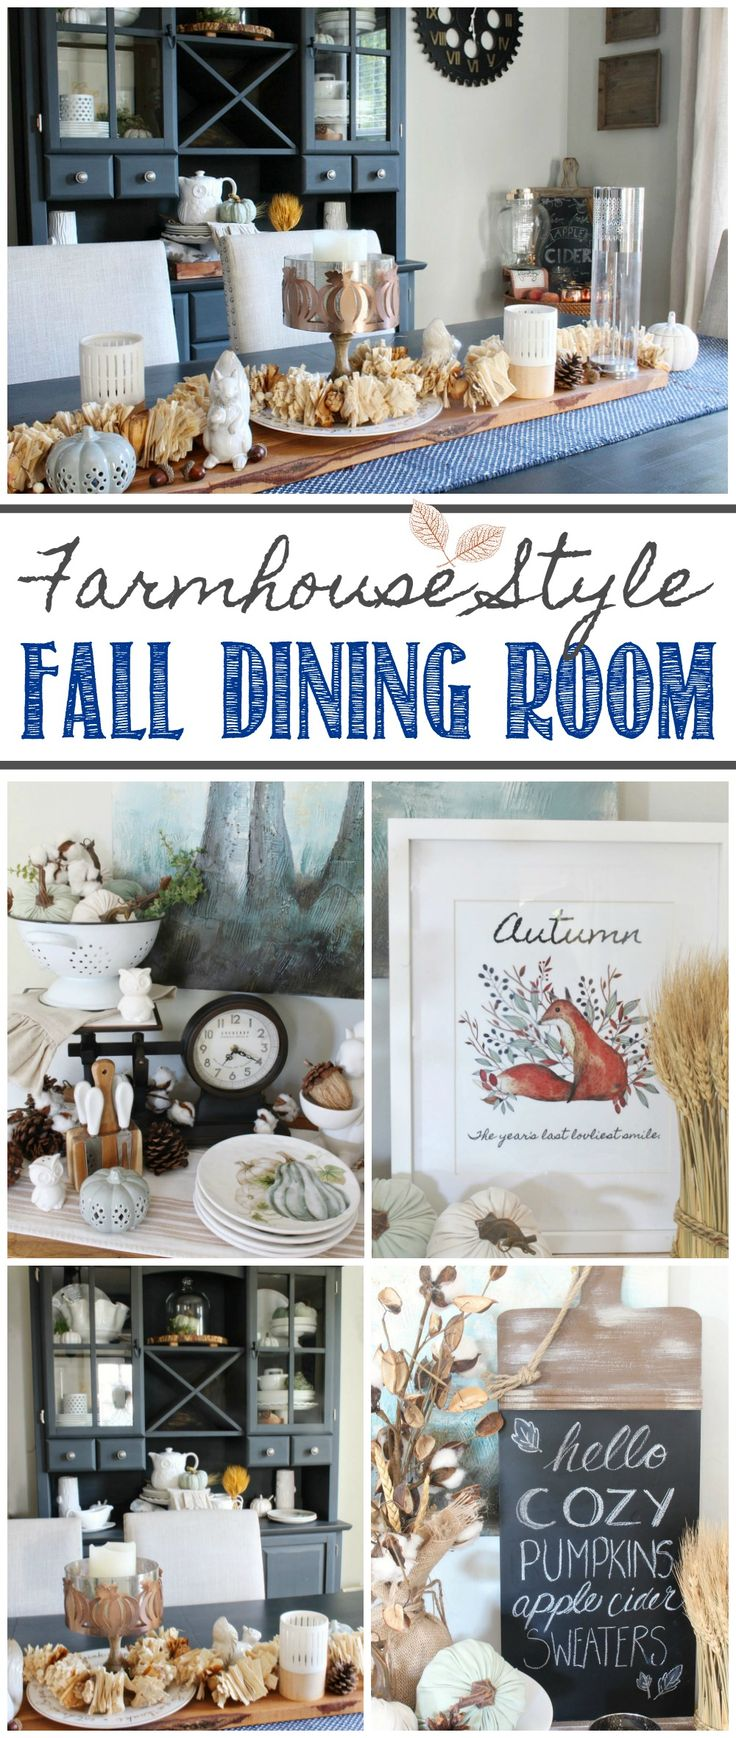 Beautiful fall dining room home tour in muted blues and neutrals.